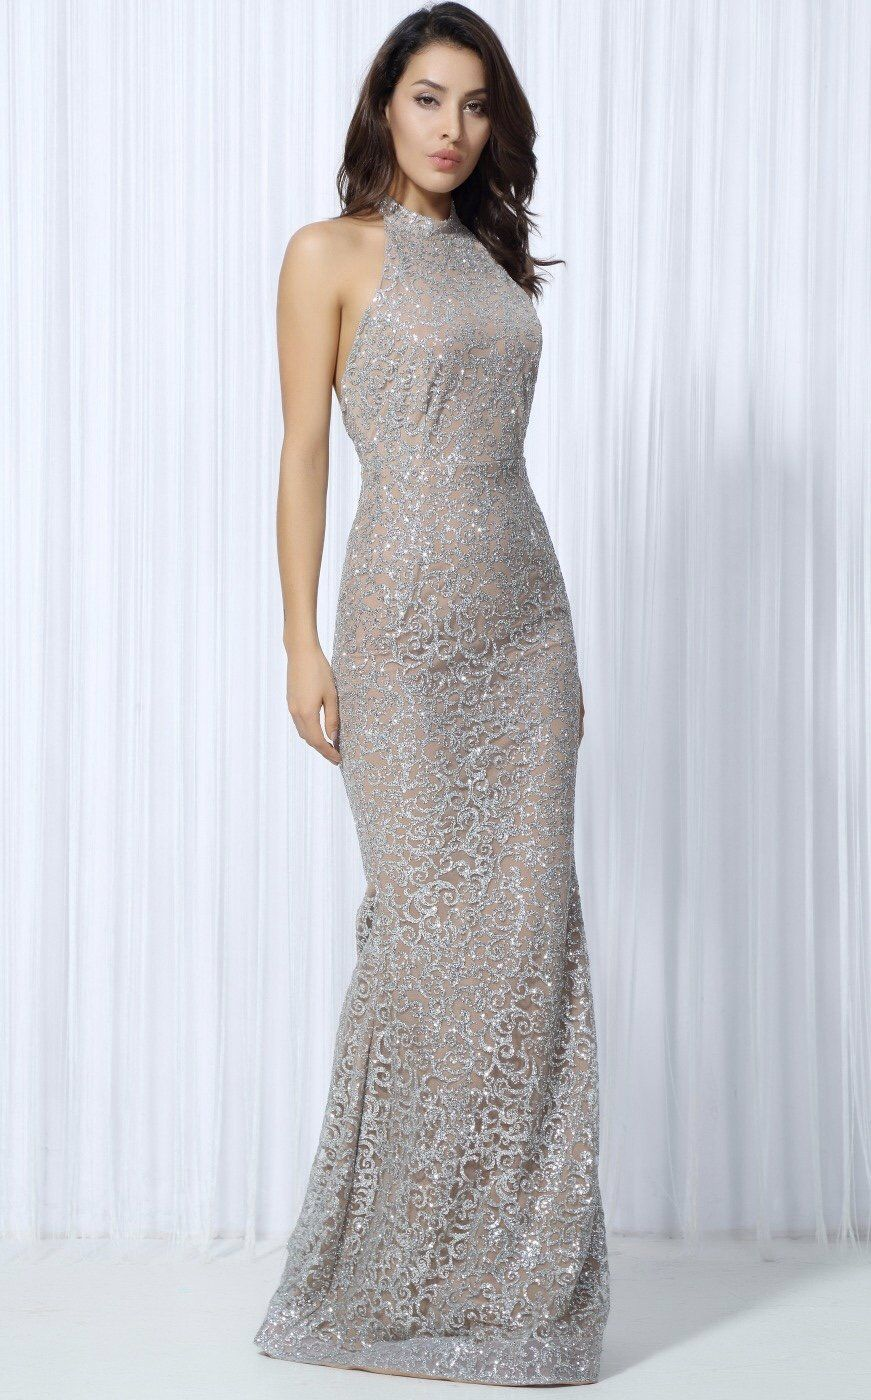 d1f6420835a38 Floral Embroidery · Girls! This beaut evening dress really is a show  stopper! This super luxe silver